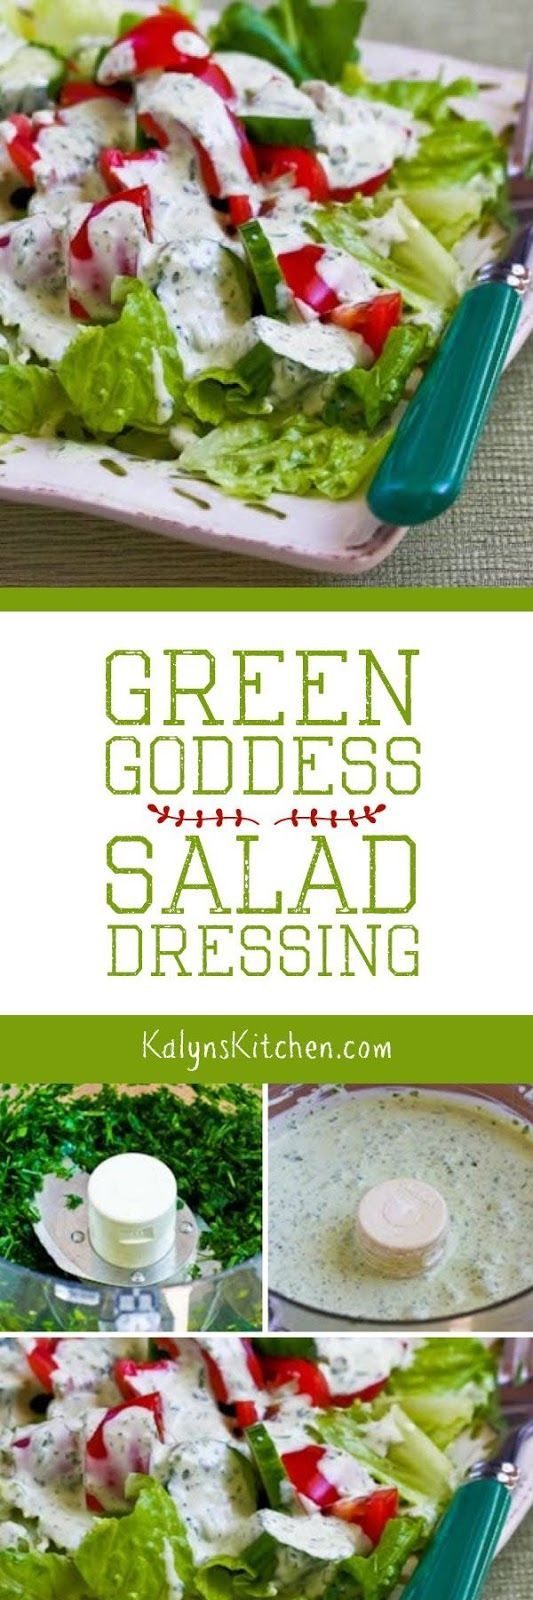 As soon as fresh tarragon starts coming up in the garden I think about making this Green Goddess Salad Dressing. This classic salad dressing is always a hit and it's low-carb, Keto, low-glycemic, gluten-free, and South Beach Diet friendly! [found on http://KalynsKitchen.com]